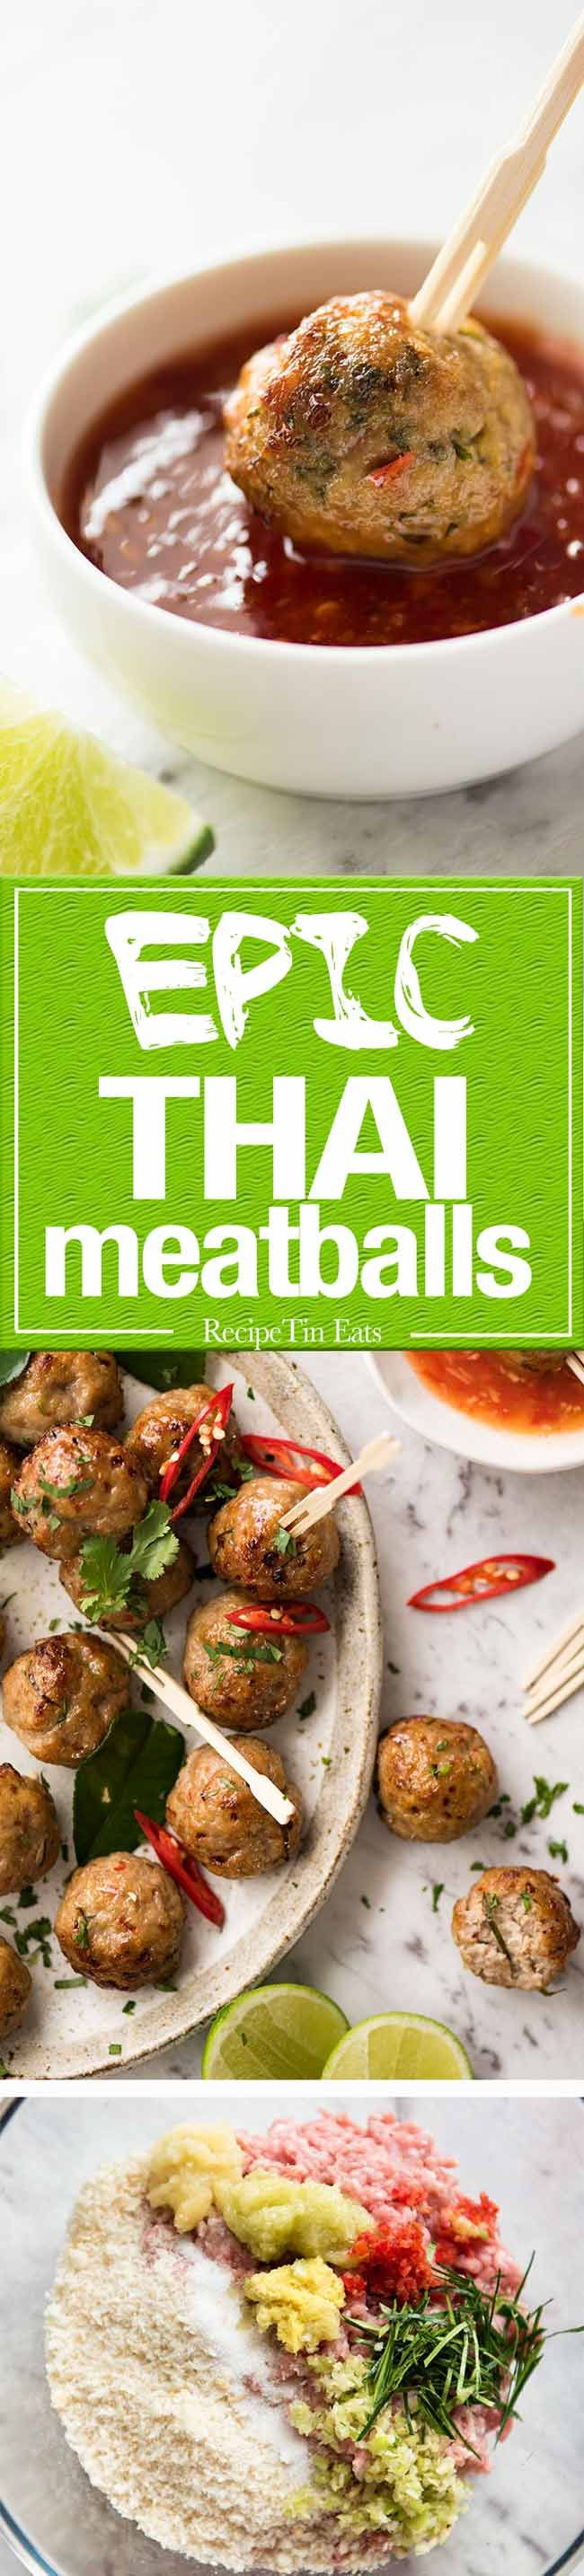 These Thai Meatballs are packed with bright, earthy Thai flavours! Make these with chicken or pork. www.recipetineats.com